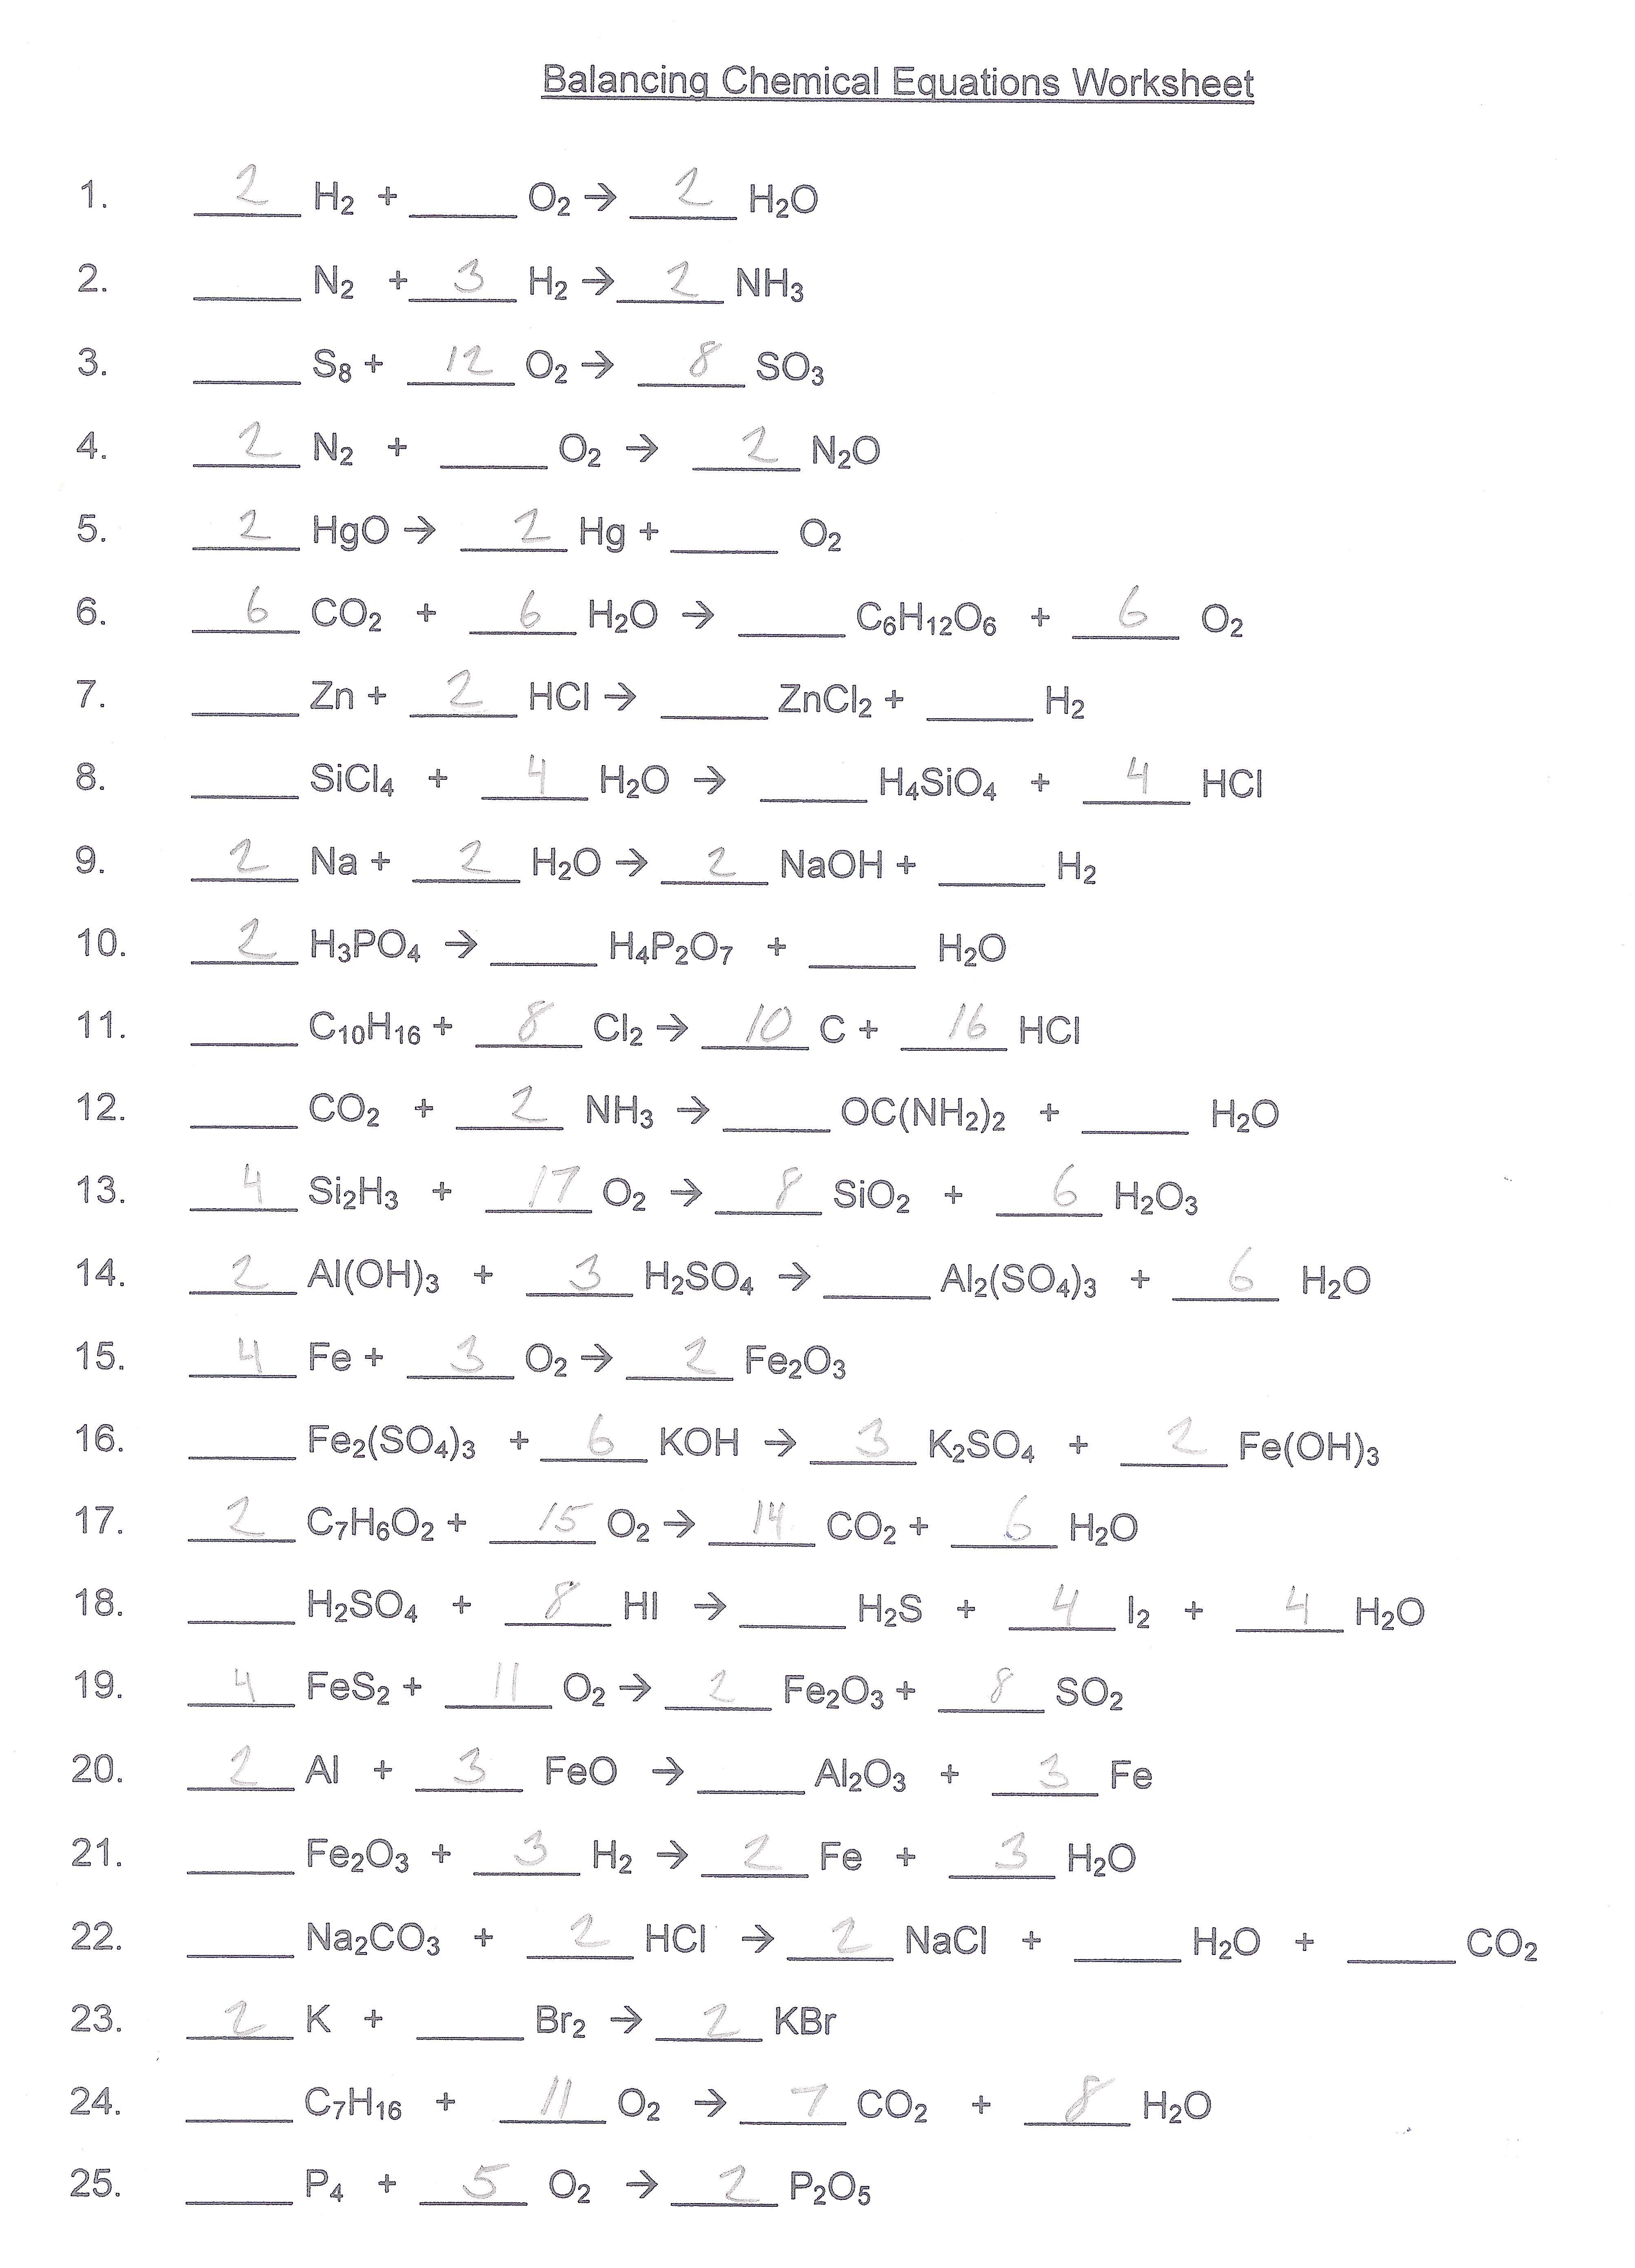 Balancing Chemical Equations Worksheet Answer Key Printable World